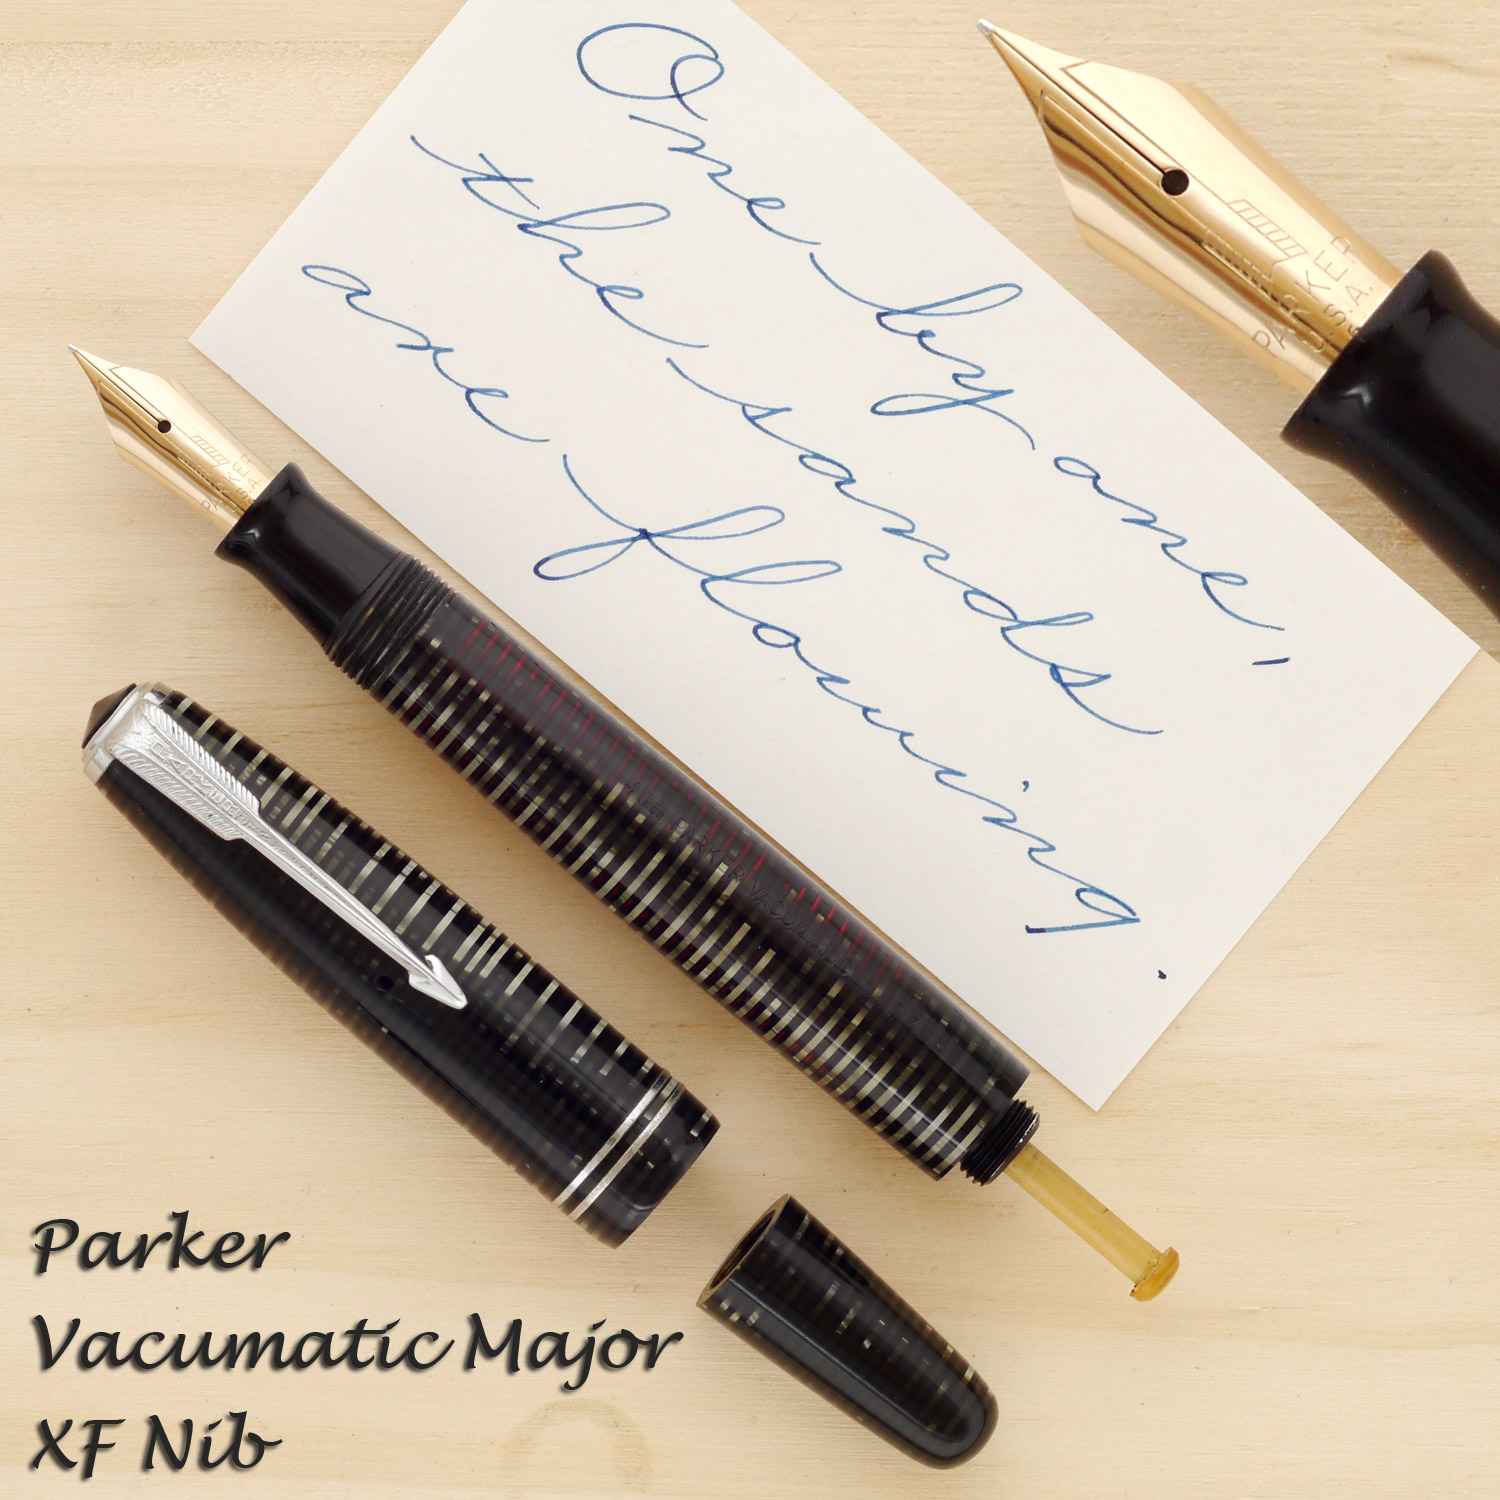 Parker Vacumatic Major in Silver Pearl with an XF nib